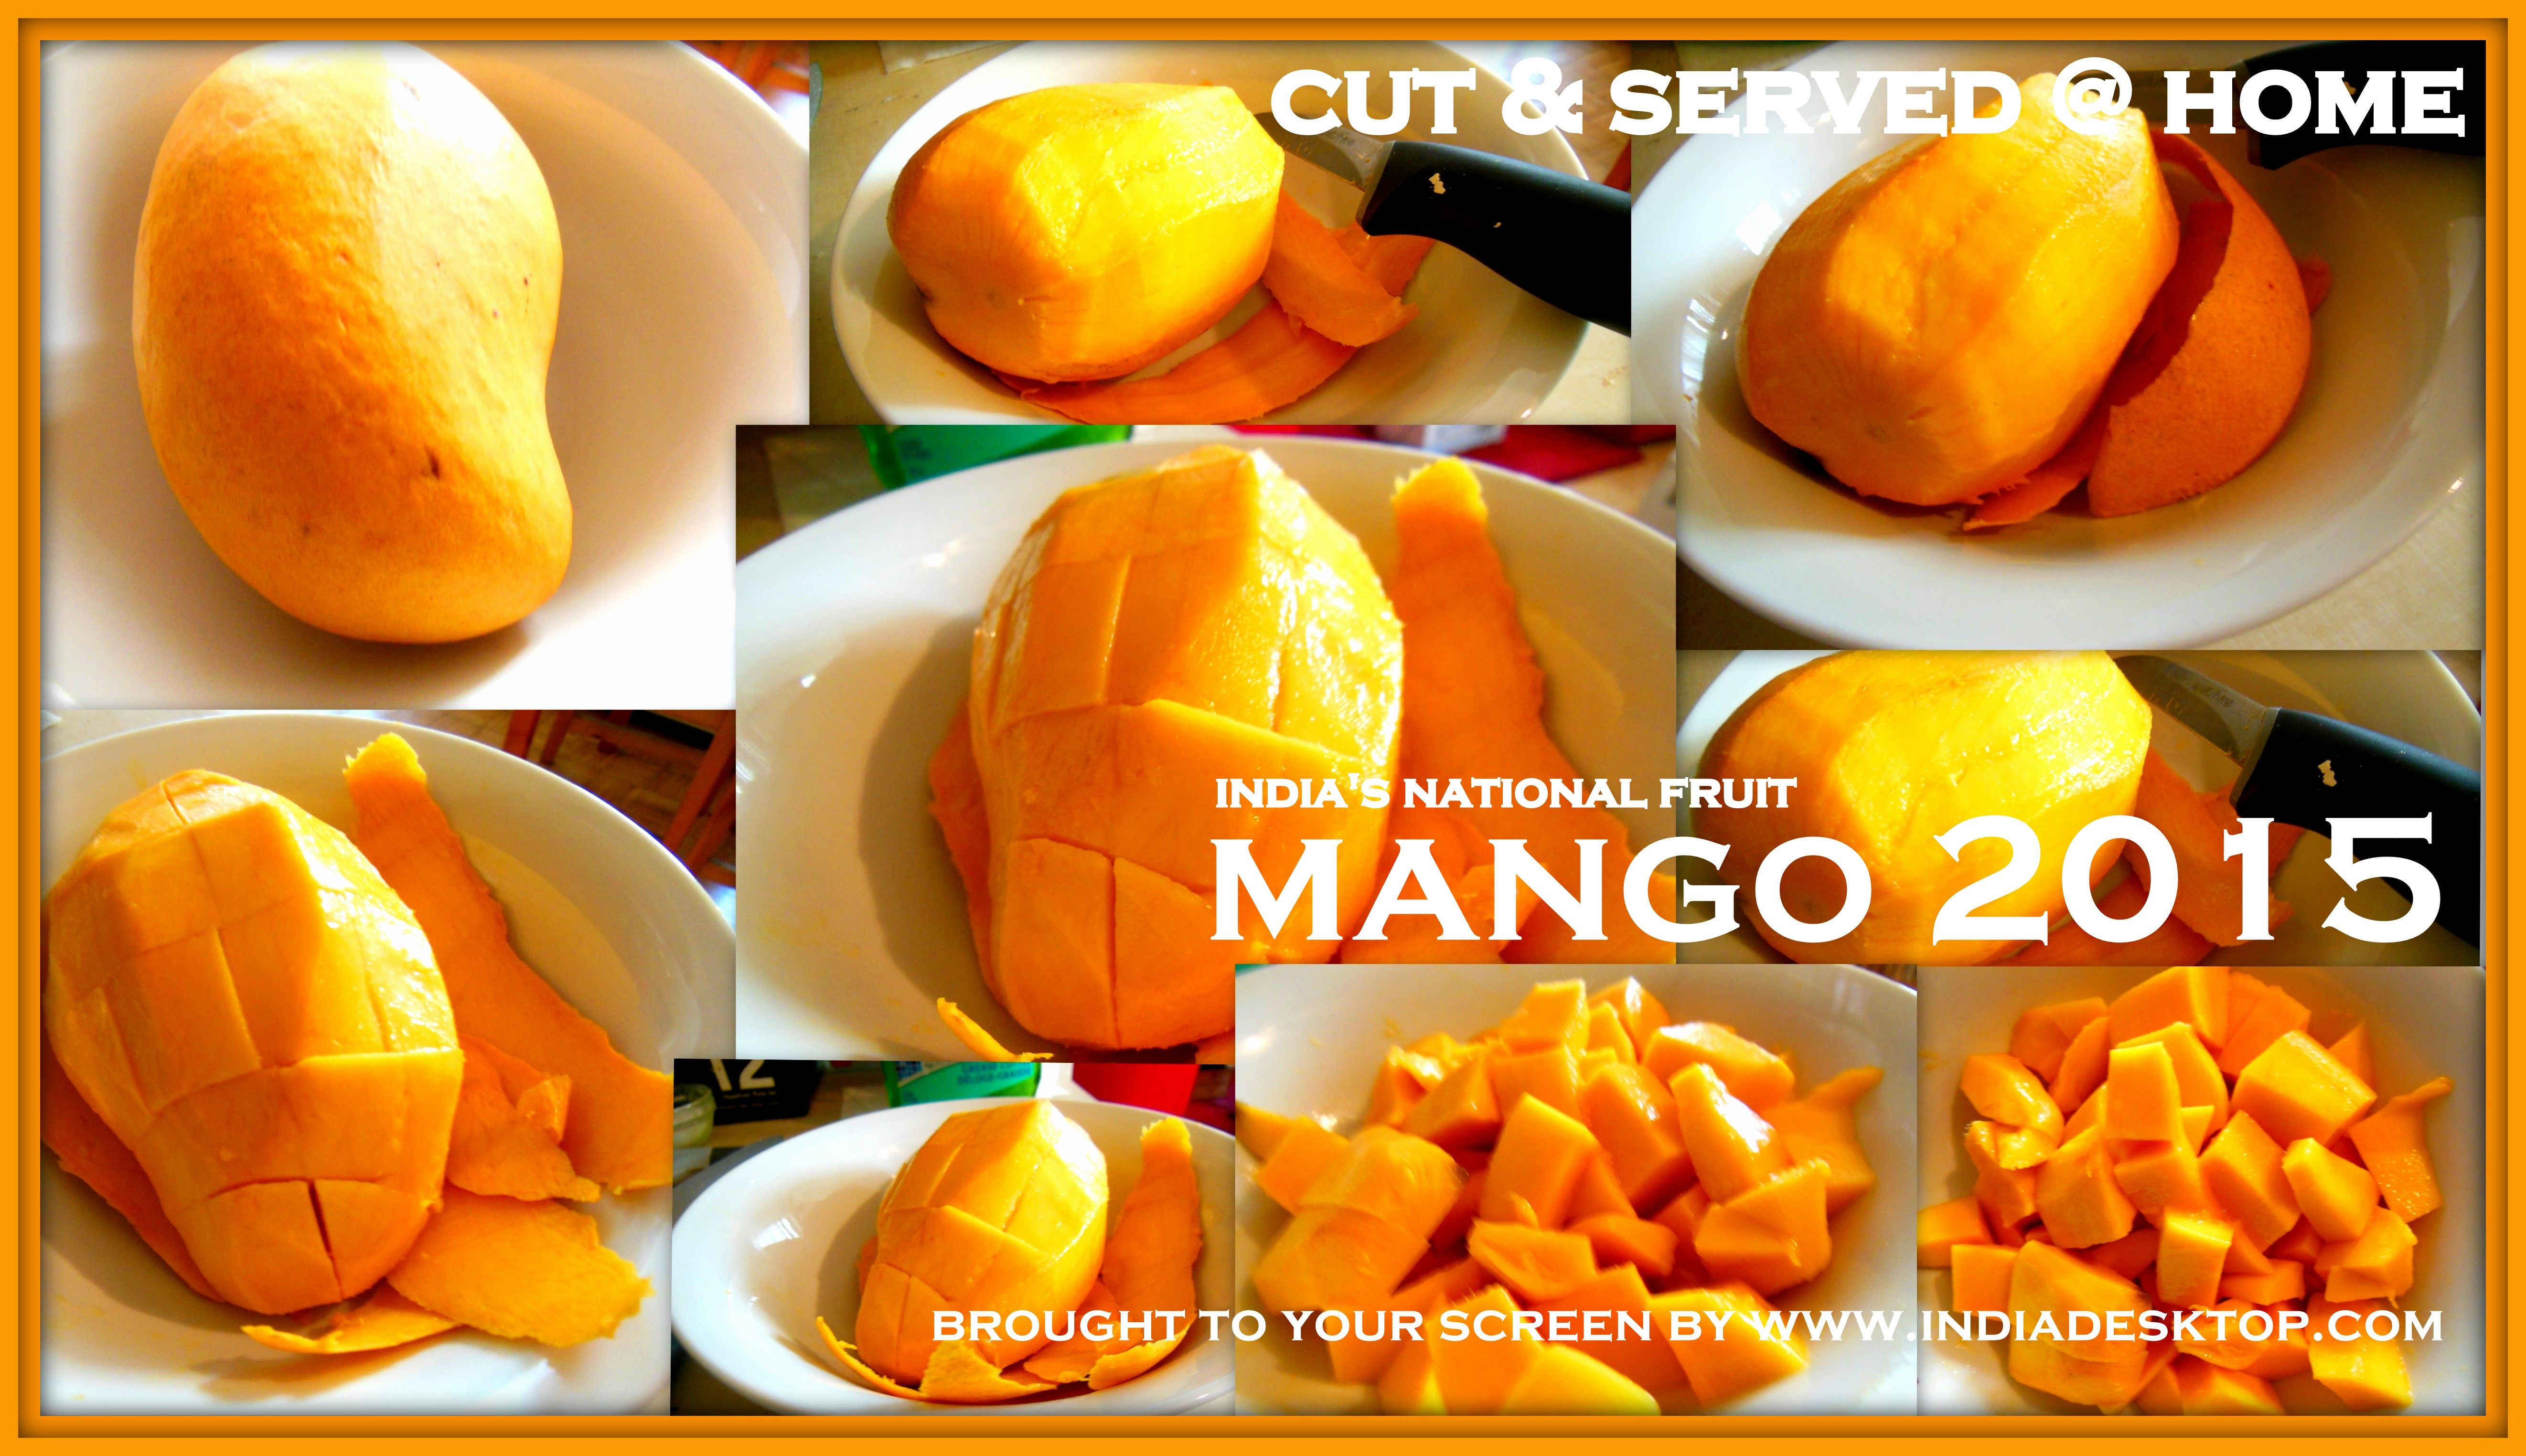 Indexp Brings The Natural  Delicacies Of Indian #mango And Mango Products We Bring You The Best Of  Indian